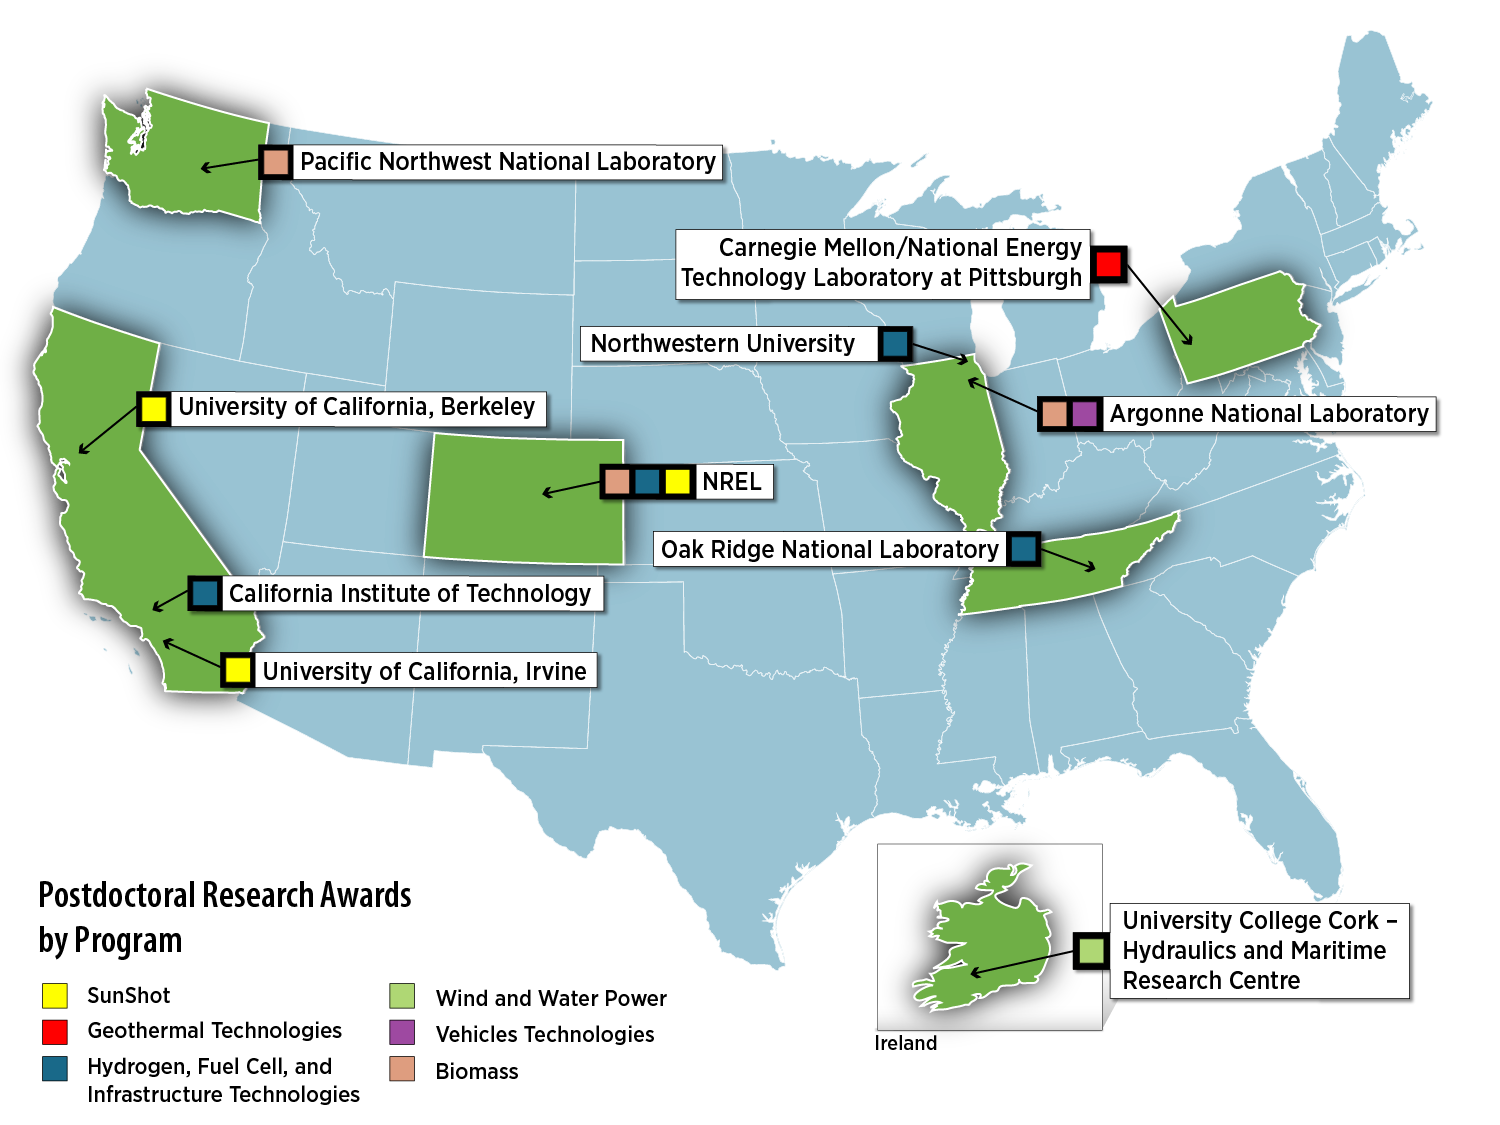 Research sites for the 2011 EERE Postdoctoral Research Awardees [image courtesy DOE/EERE].